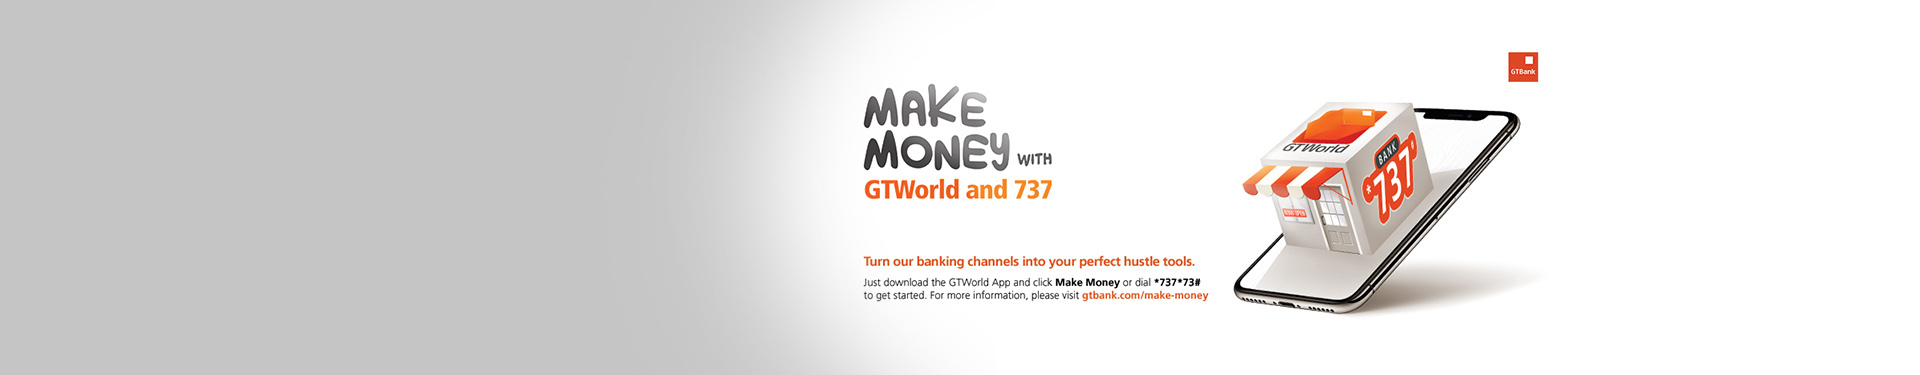 GTBank Make Money